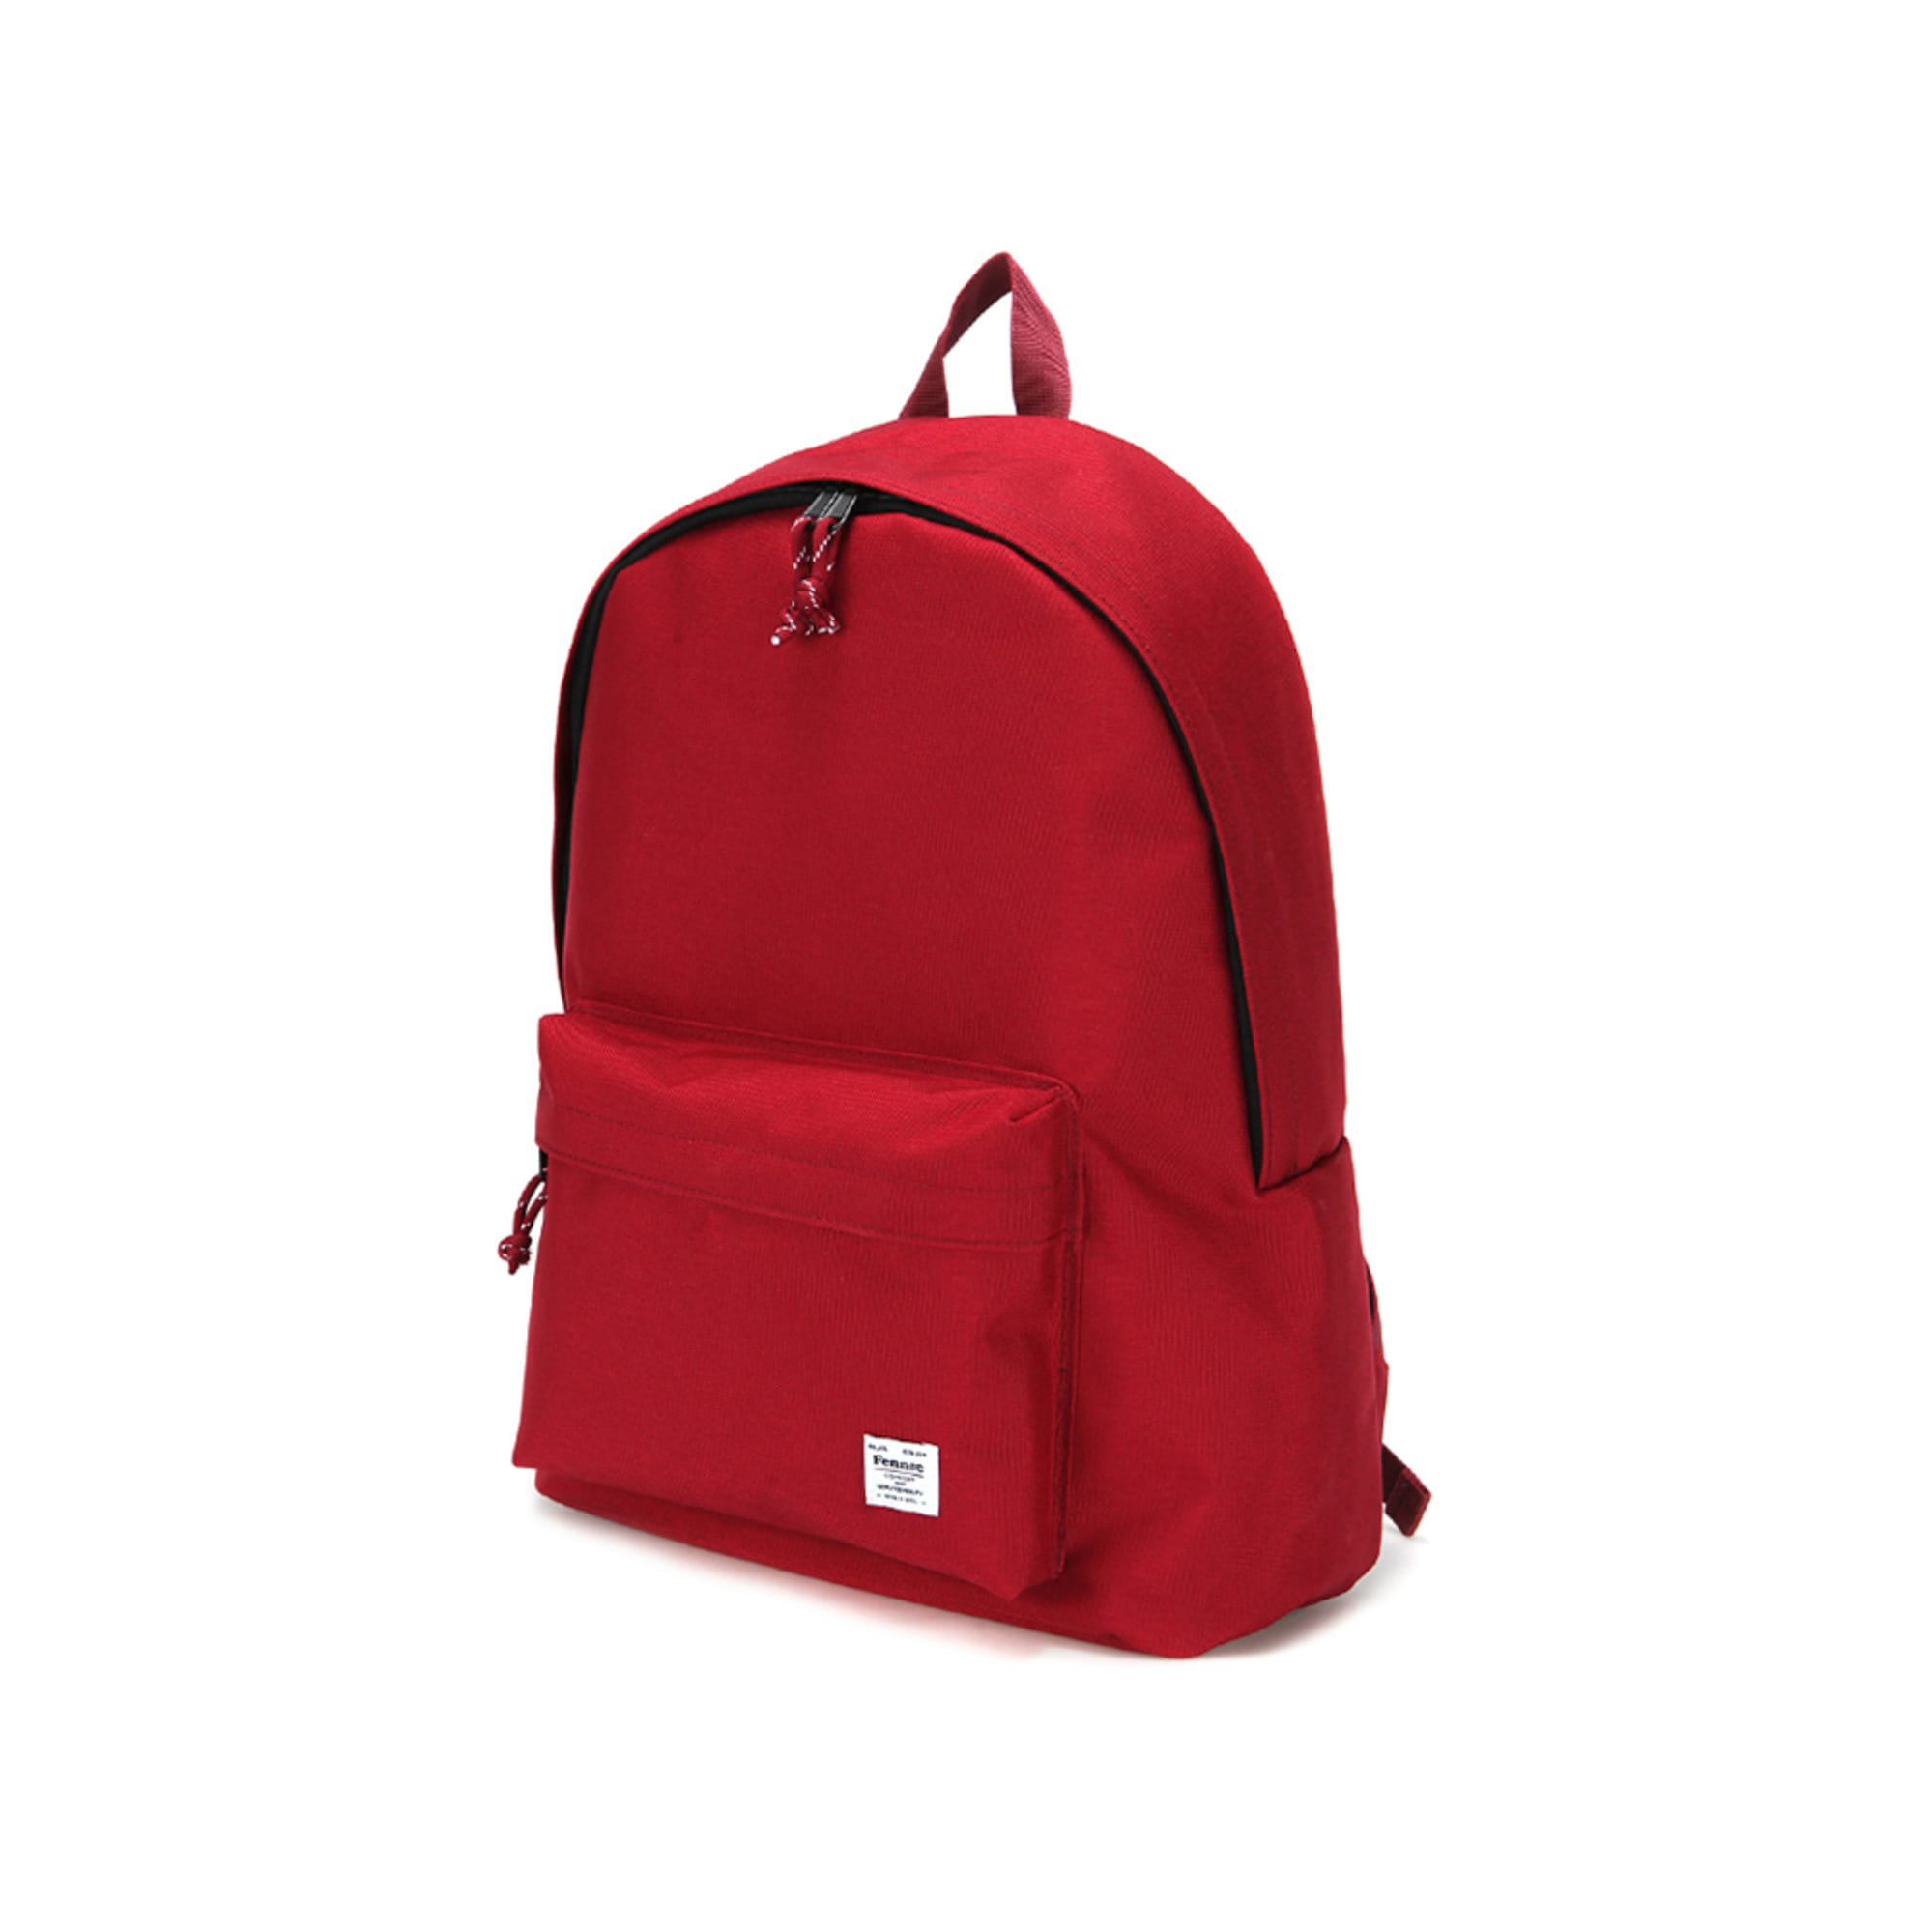 [DISCONTINUE] C&S BACKPACK - SMOKE RED